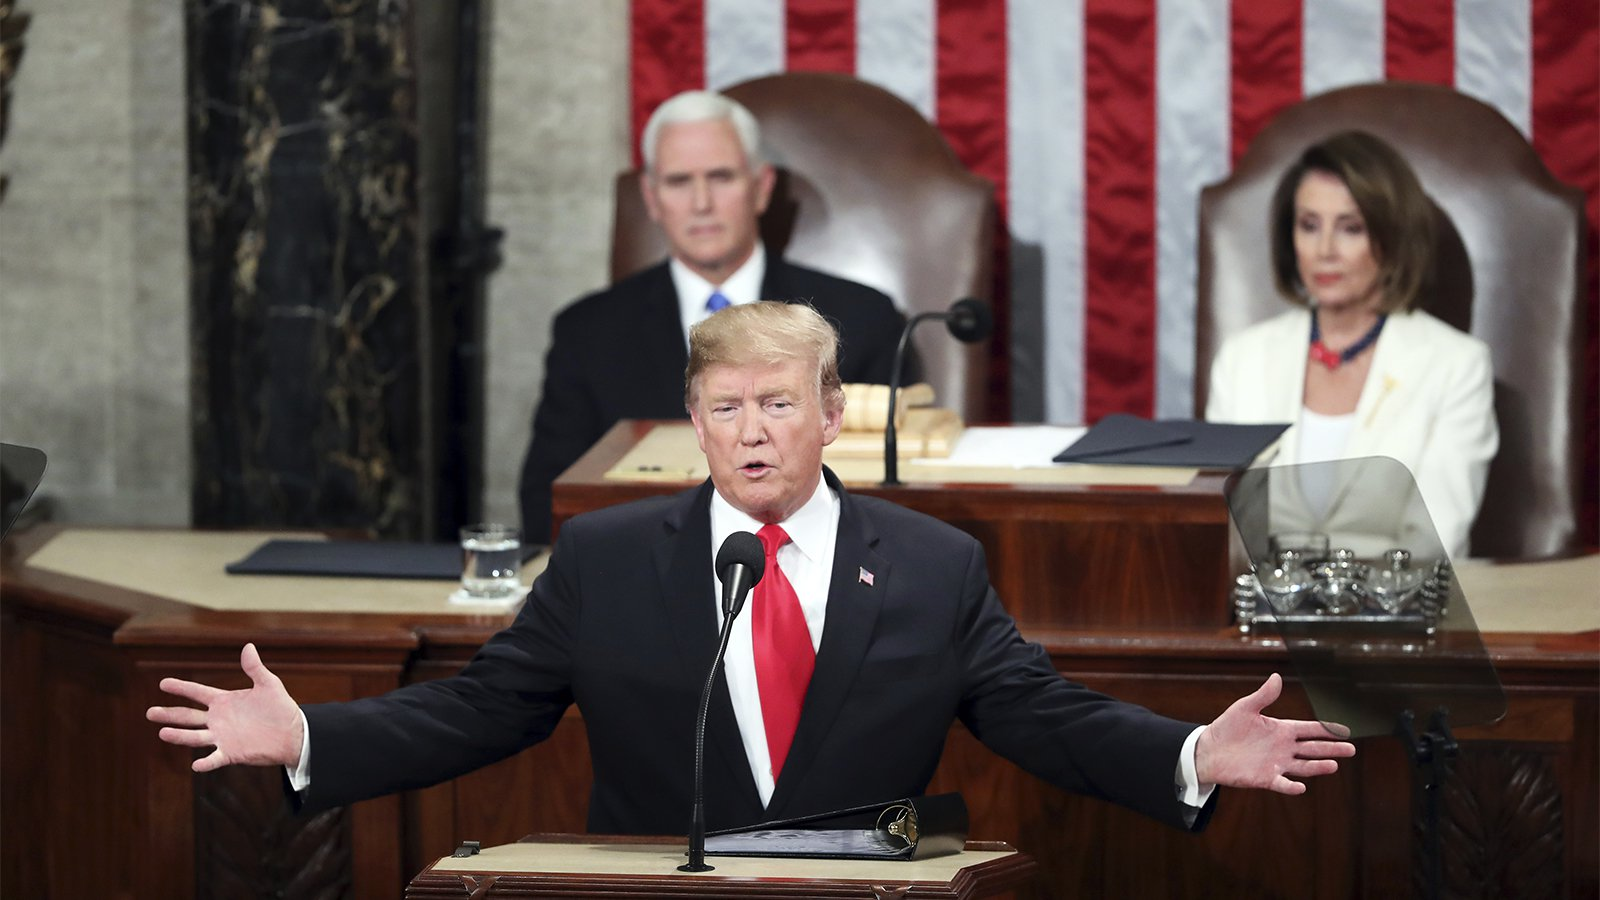 State of the Union presented by President Trump